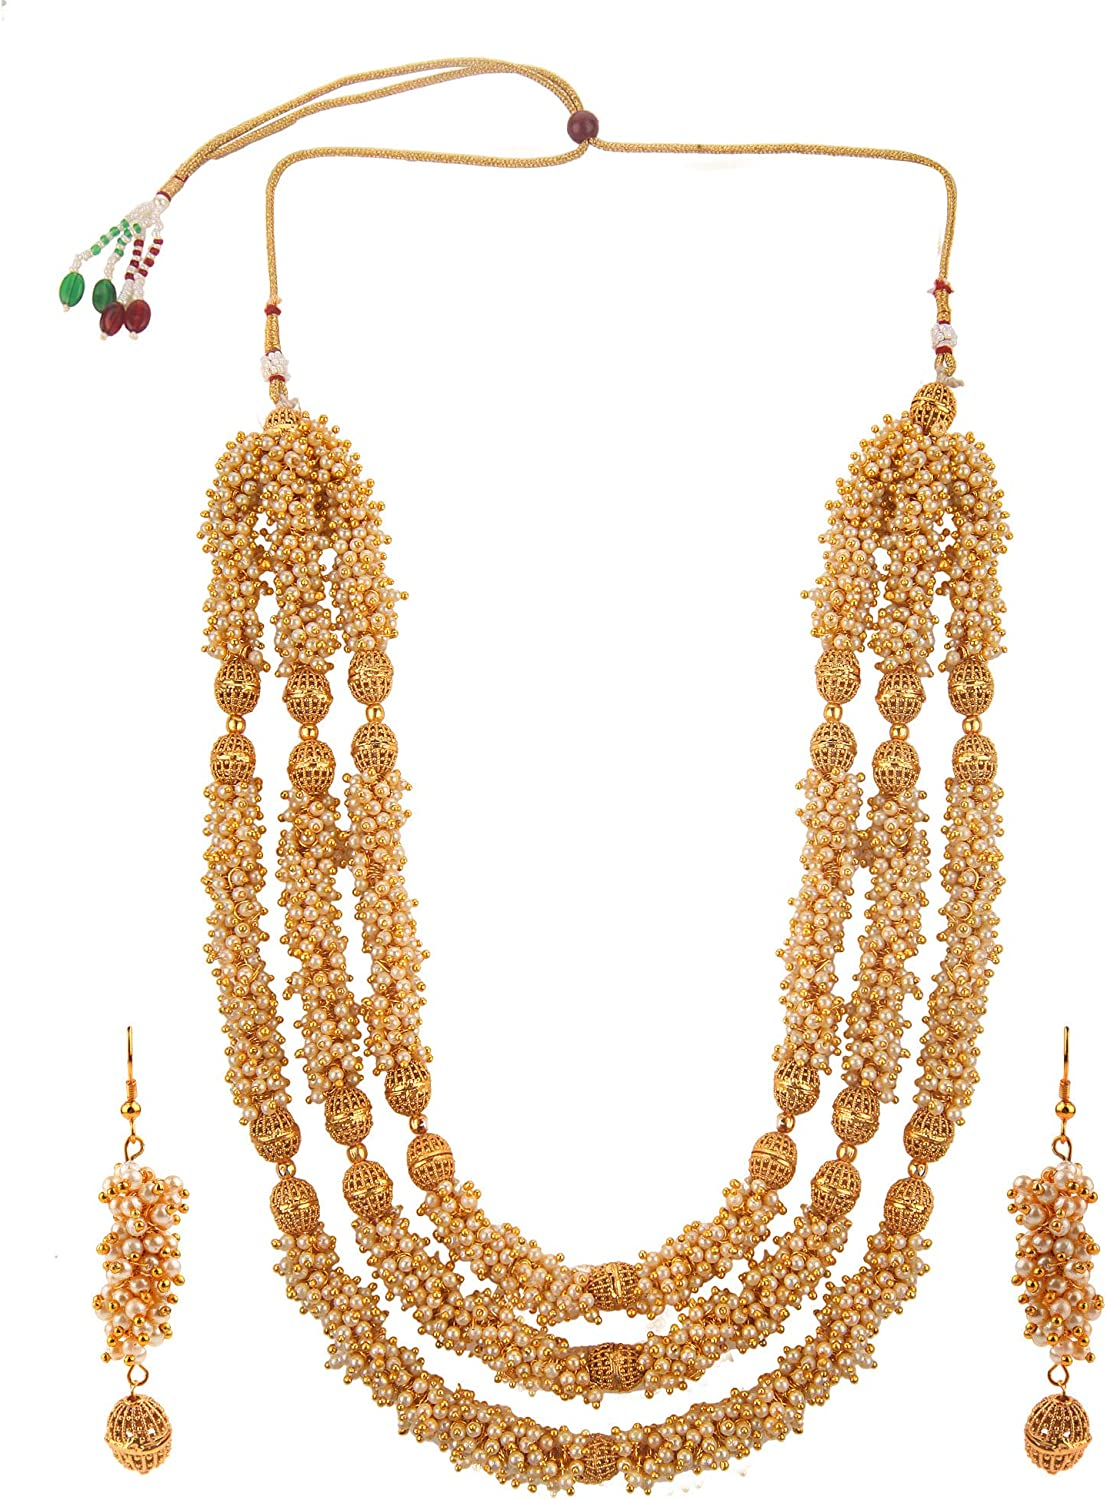 Efulgenz Fashion Indian Bollywood 14 K Gold Plated Faux Pearl Bridal Multi Layered Statement Necklace Earrings Jewelry Set